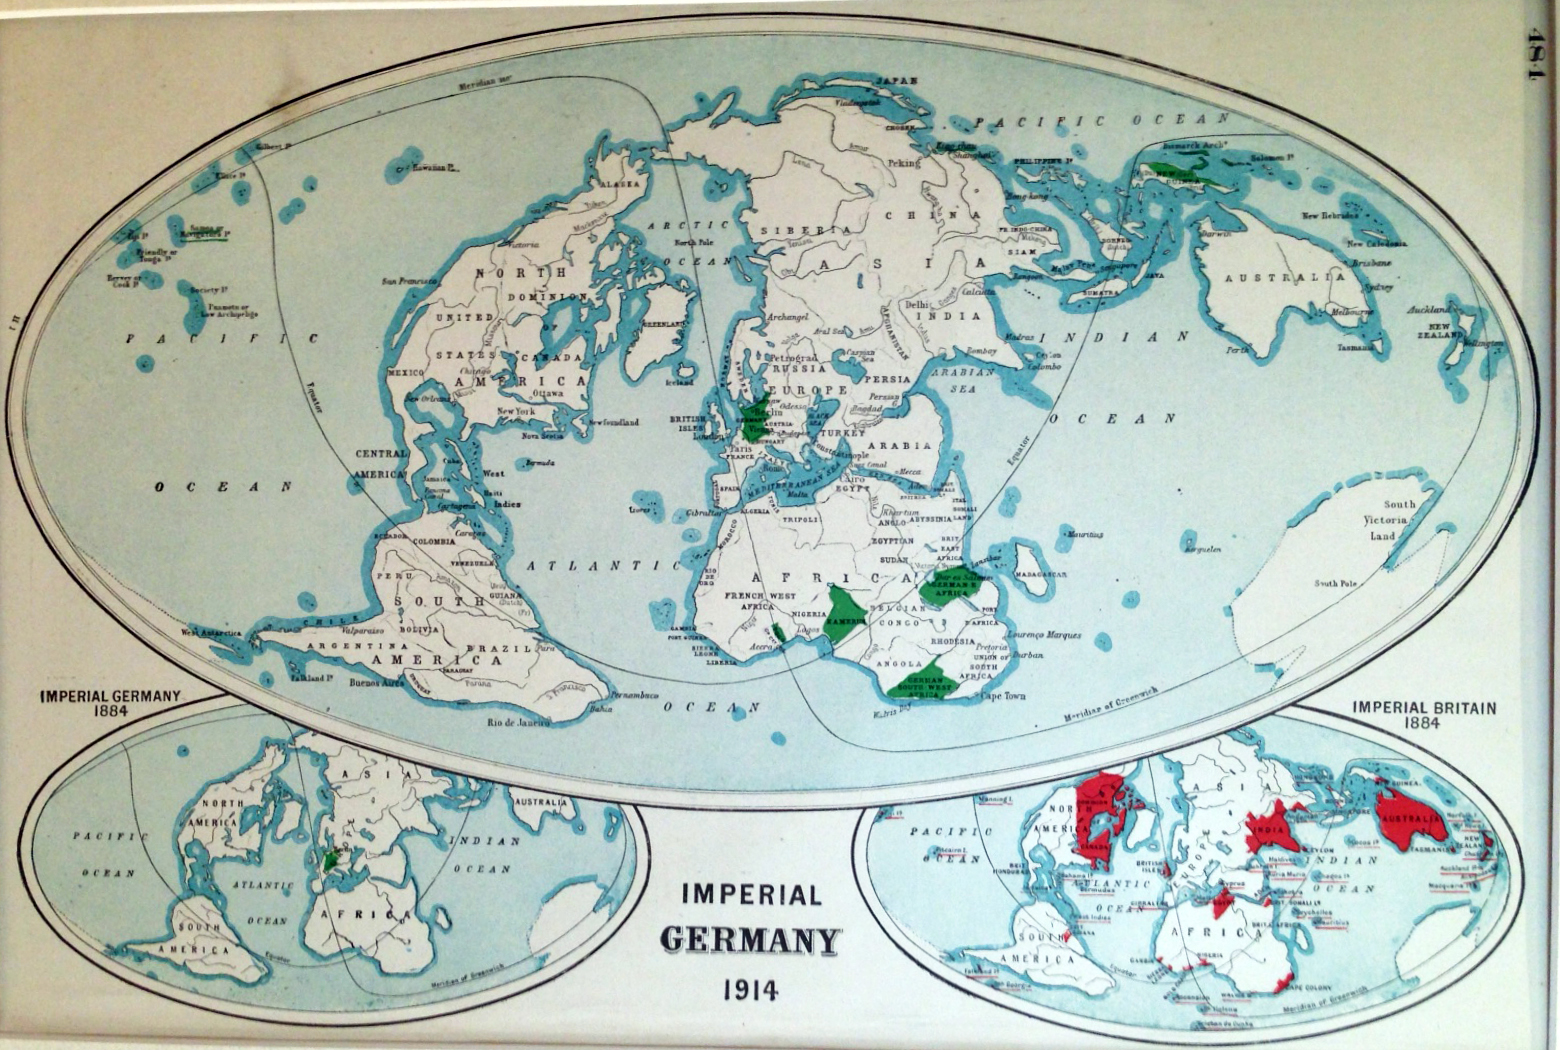 Map Of Germany In 1914.1914 Imperial Germany Trowbridge Gallery